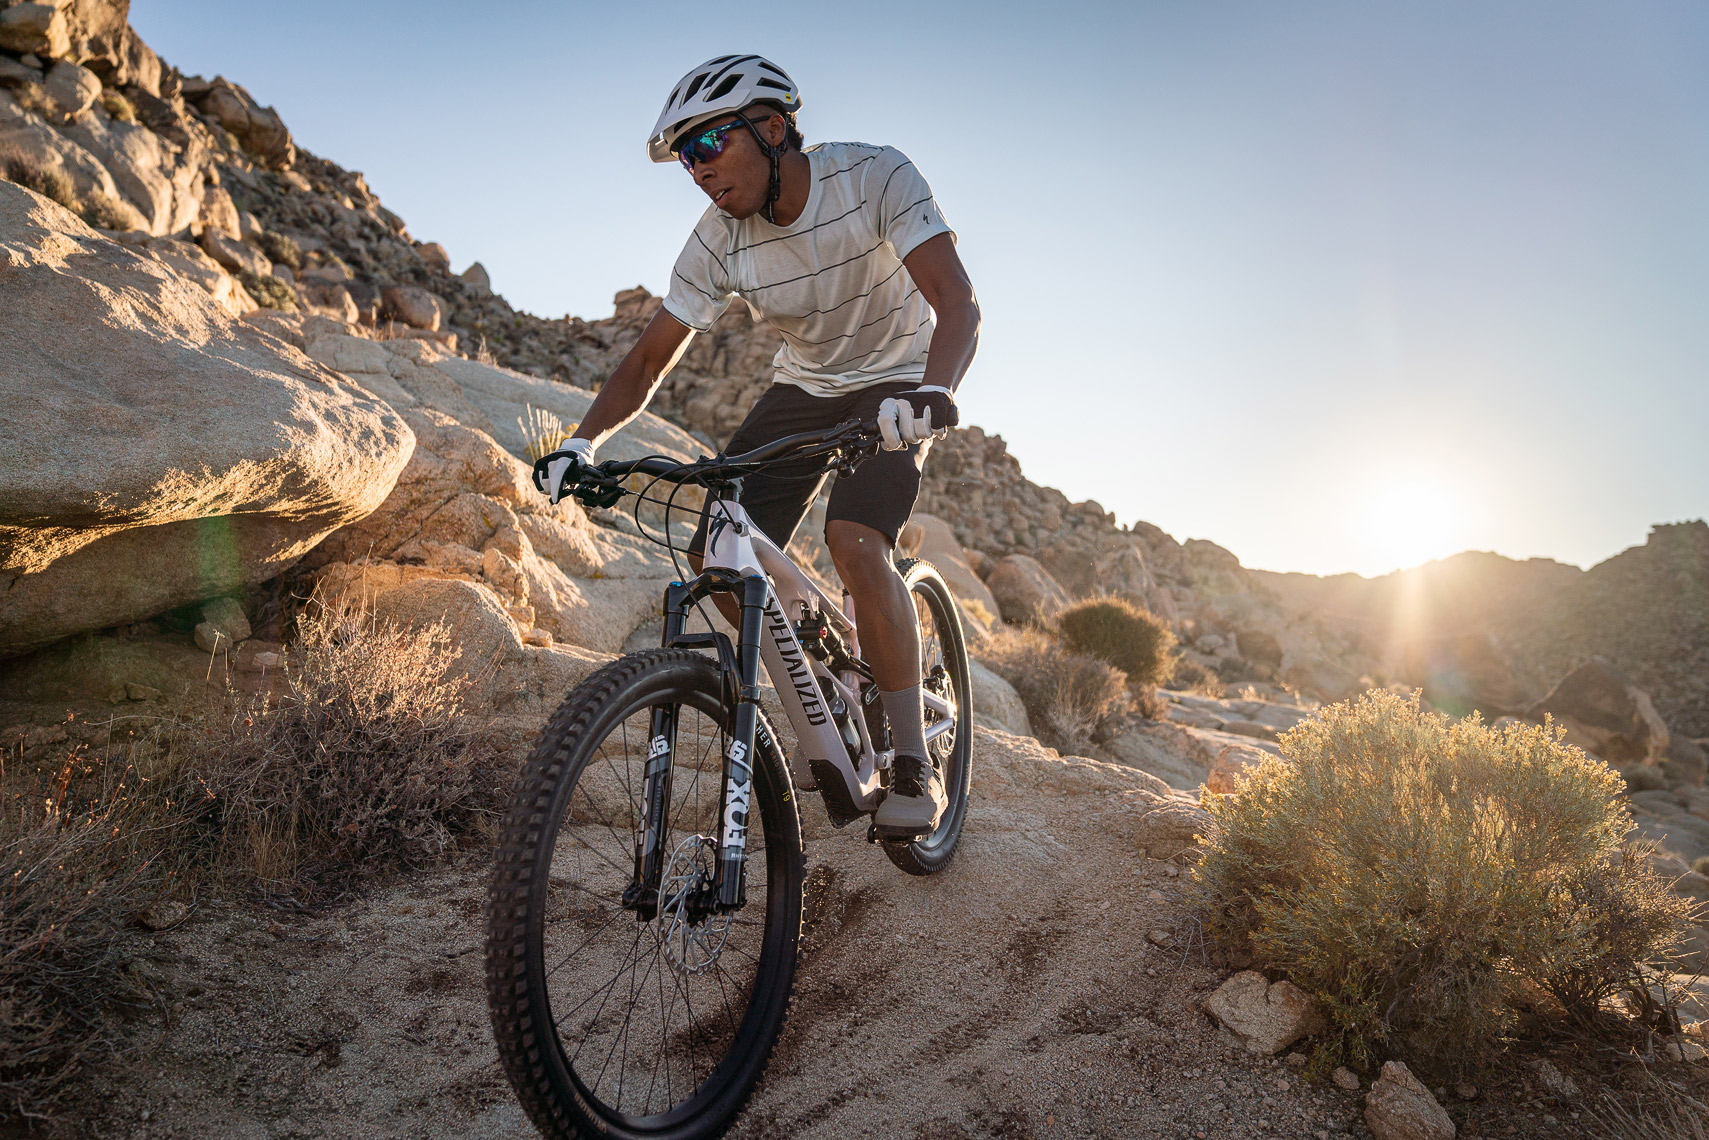 Specialized_S21_MTB_Clothing_Palm_Springs_VanWeelden-104